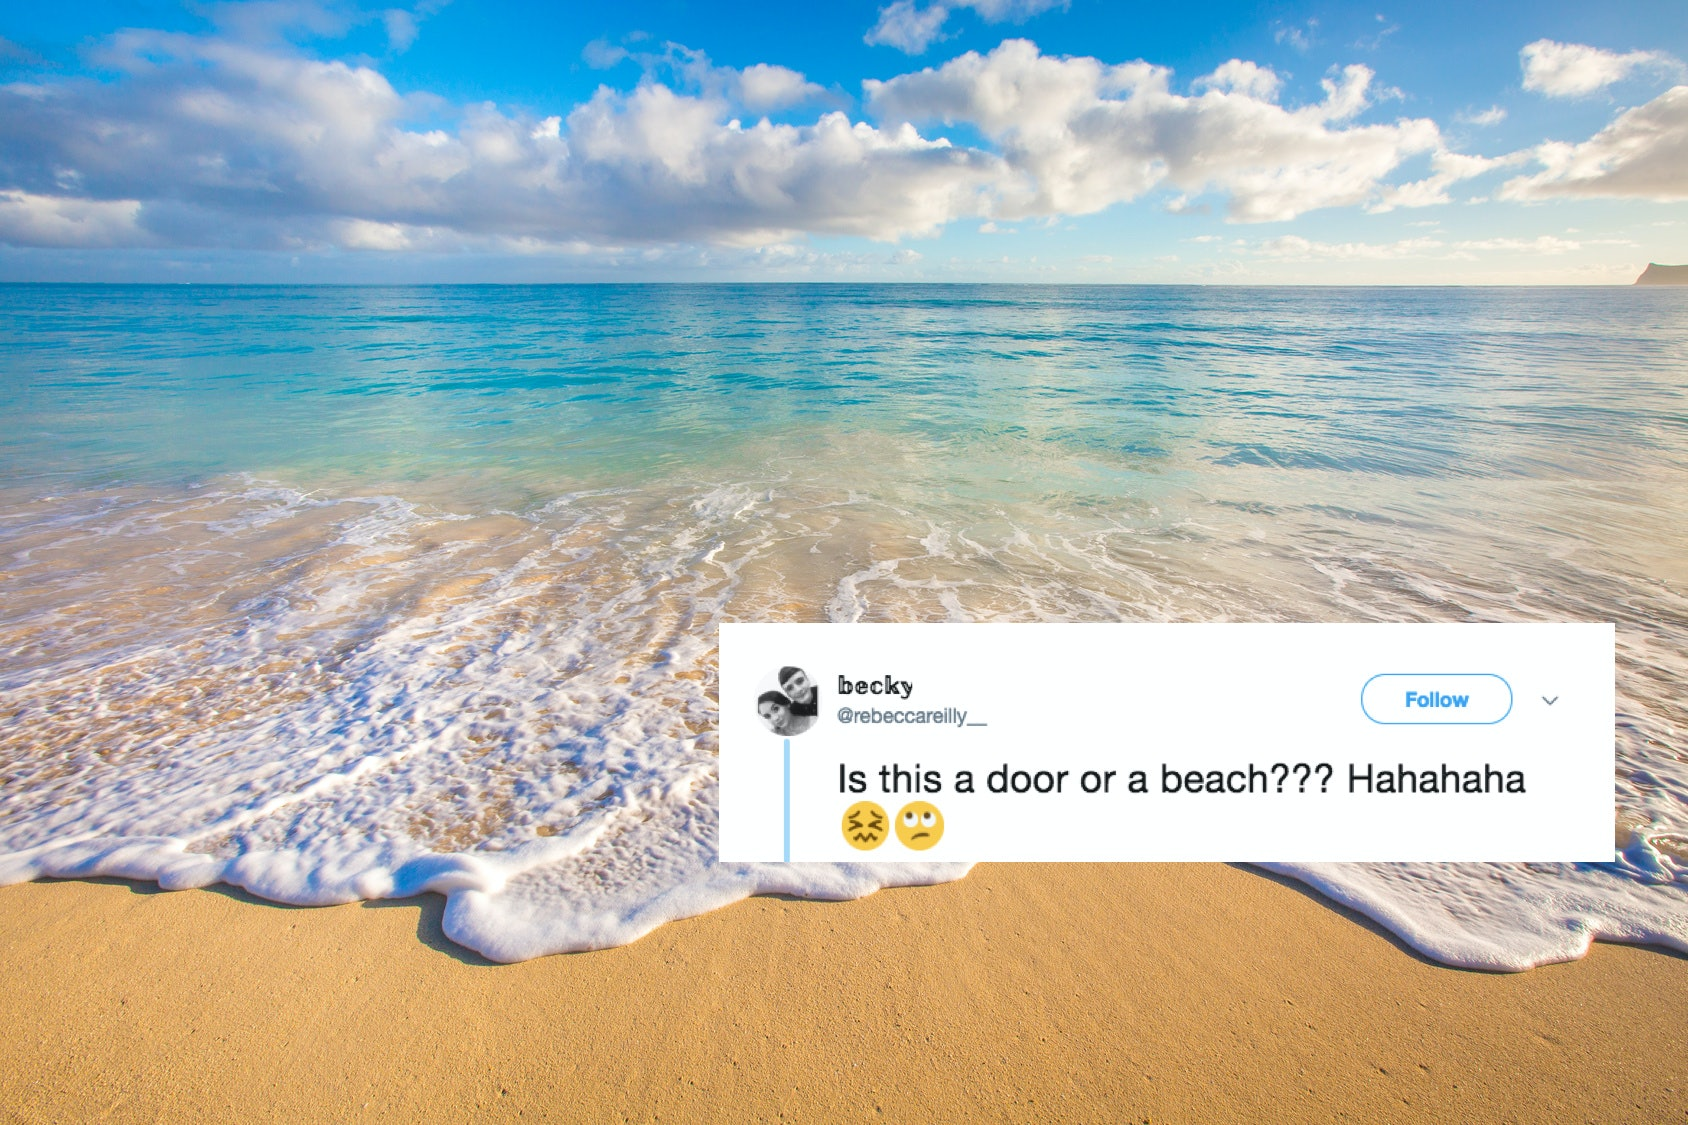 New illusion: the beach or the door 79